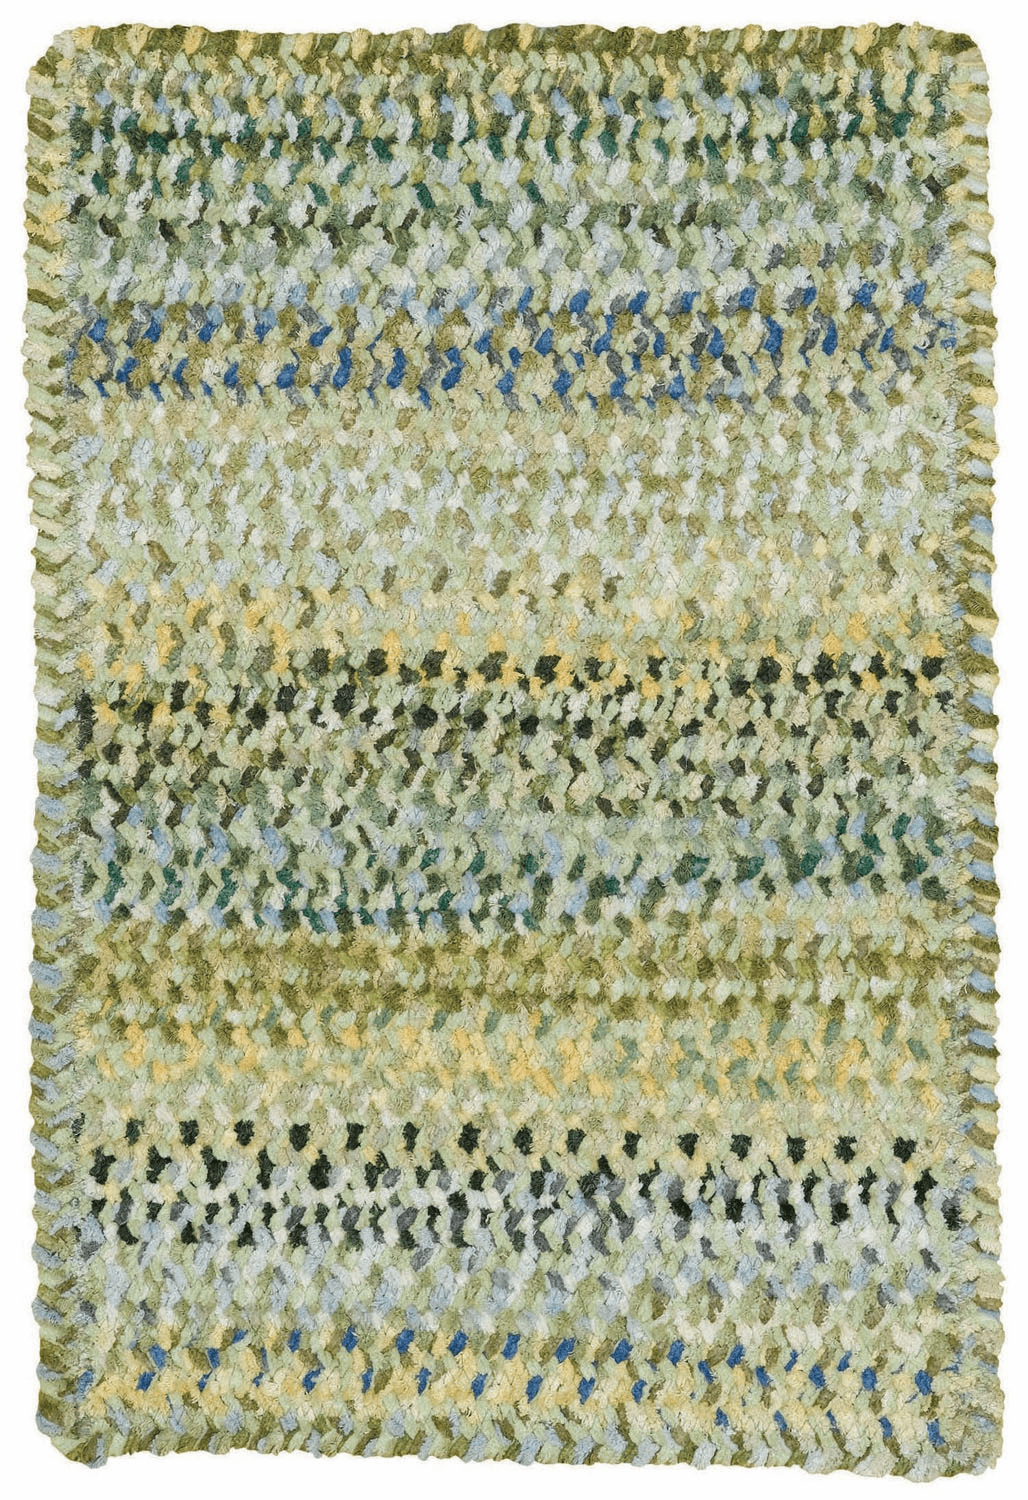 Hand-Braided Pale Green Rug